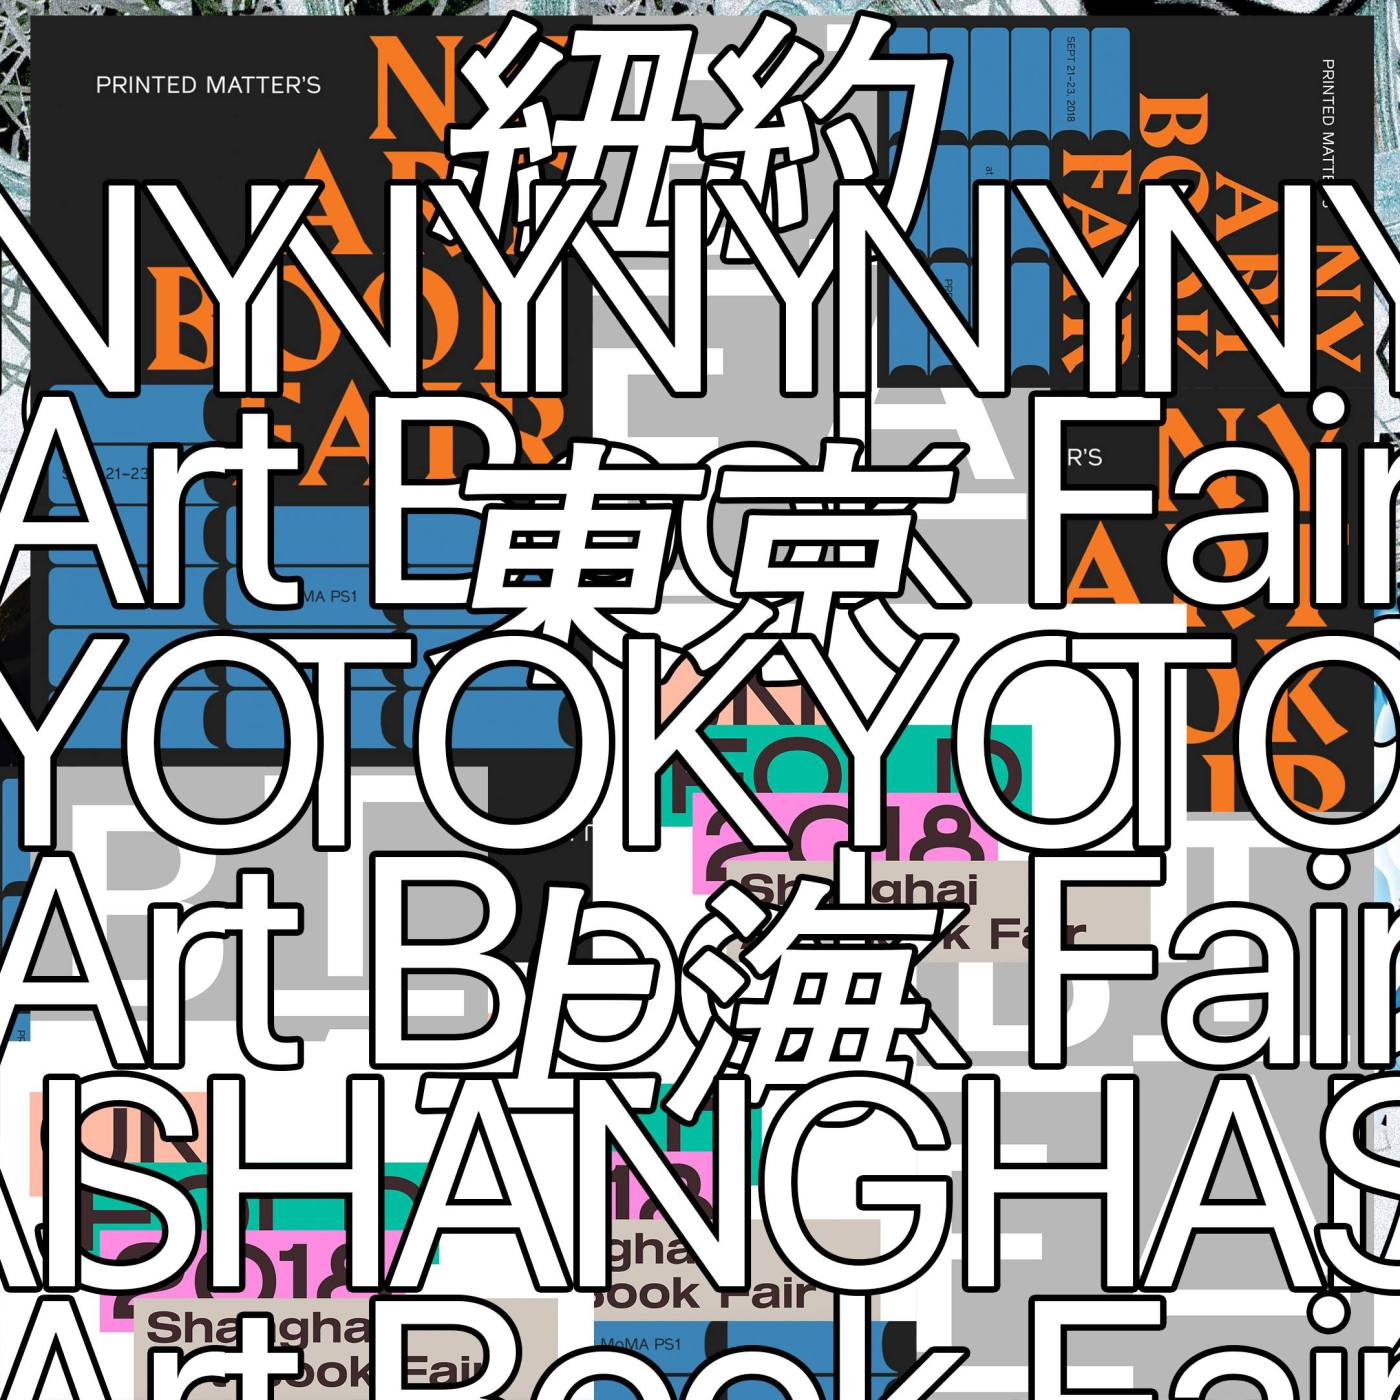 highlight 與紐約東京上海art book fair連線